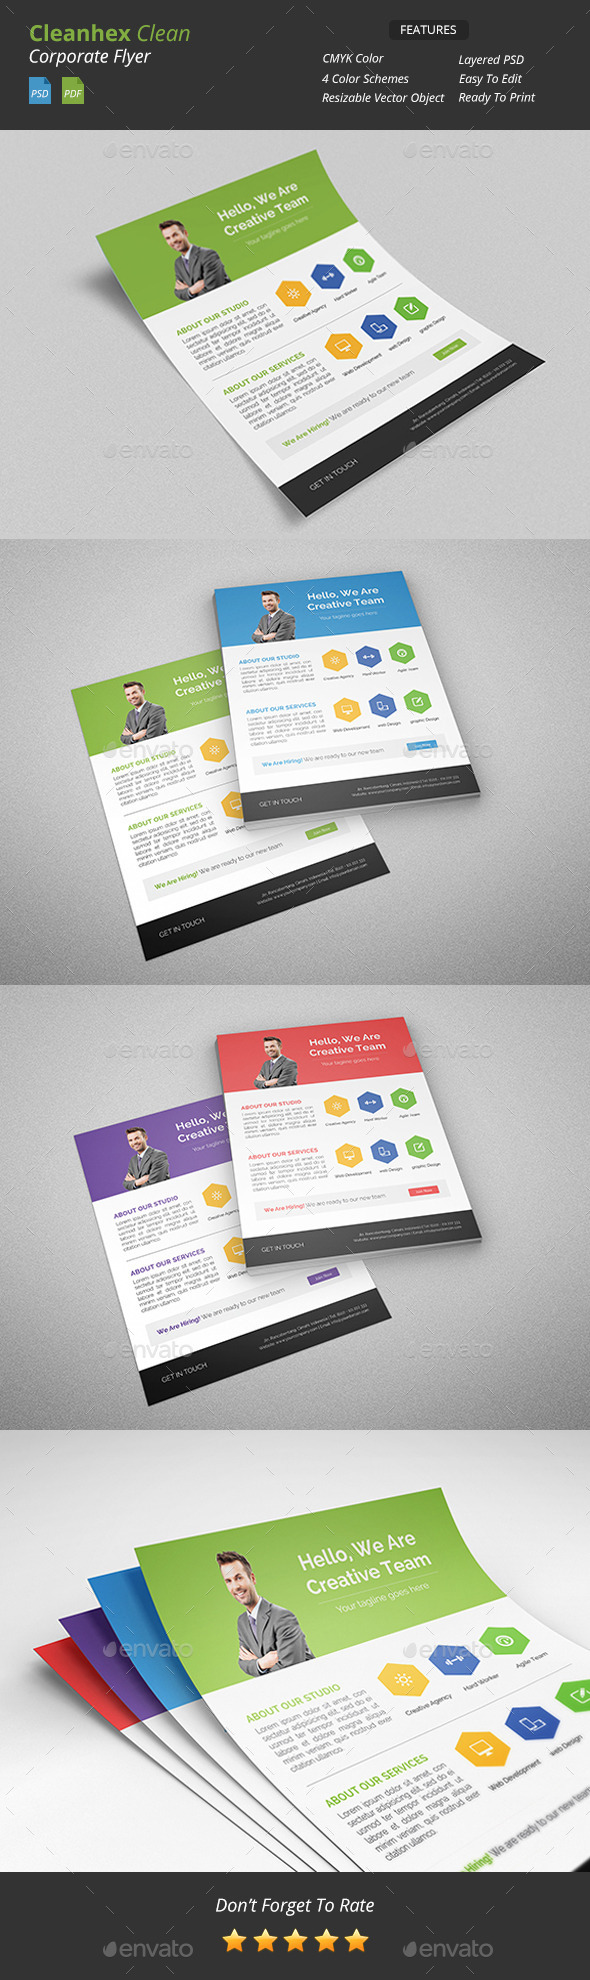 Cleanhex - Clean Corporate Flyer - Corporate Flyers